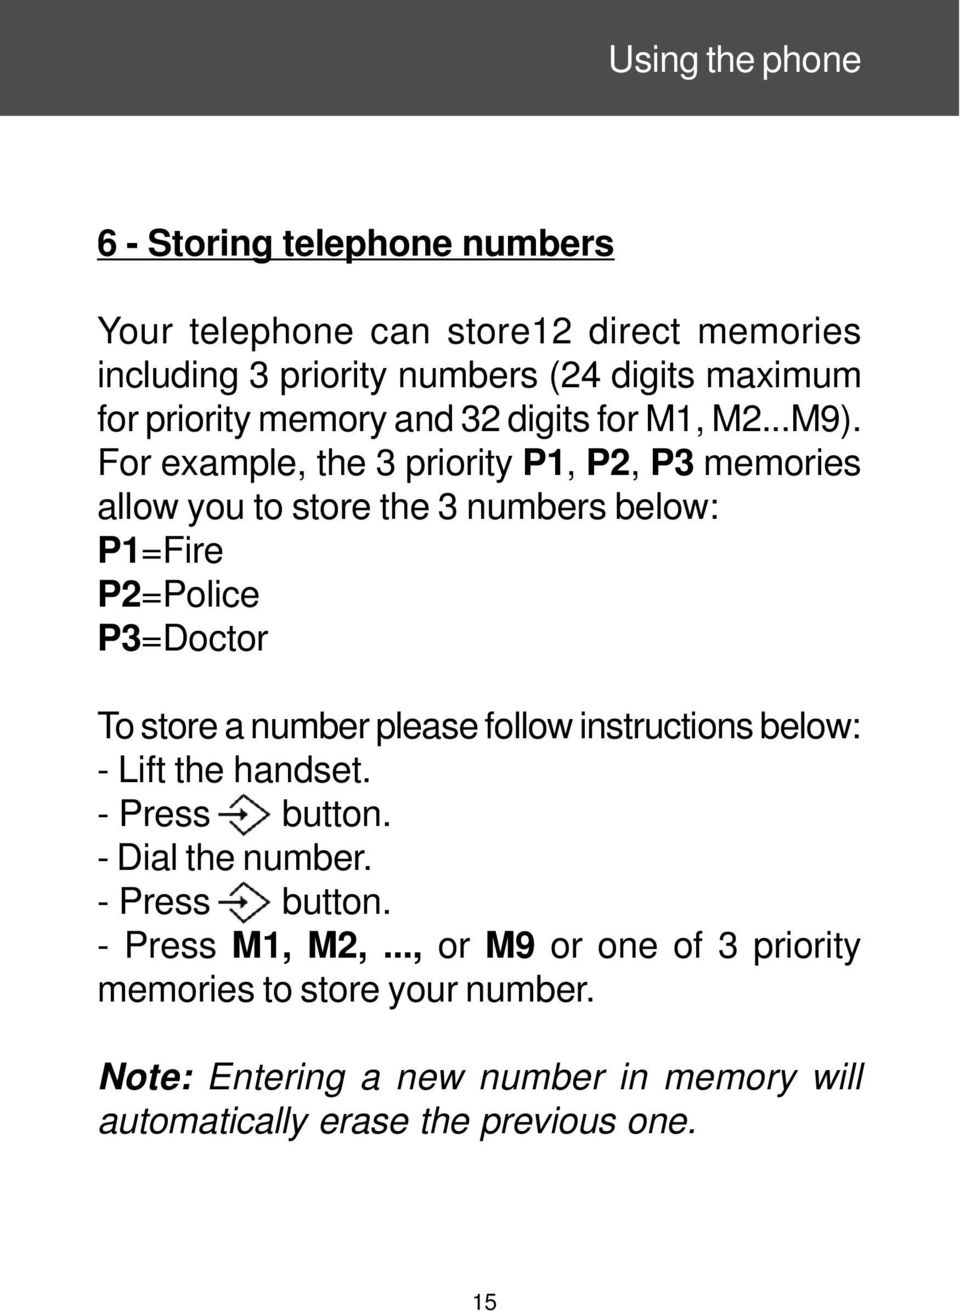 For example, the 3 priority P1, P2, P3 memories allow you to store the 3 numbers below: P1=Fire P2=Police P3=Doctor To store a number please follow